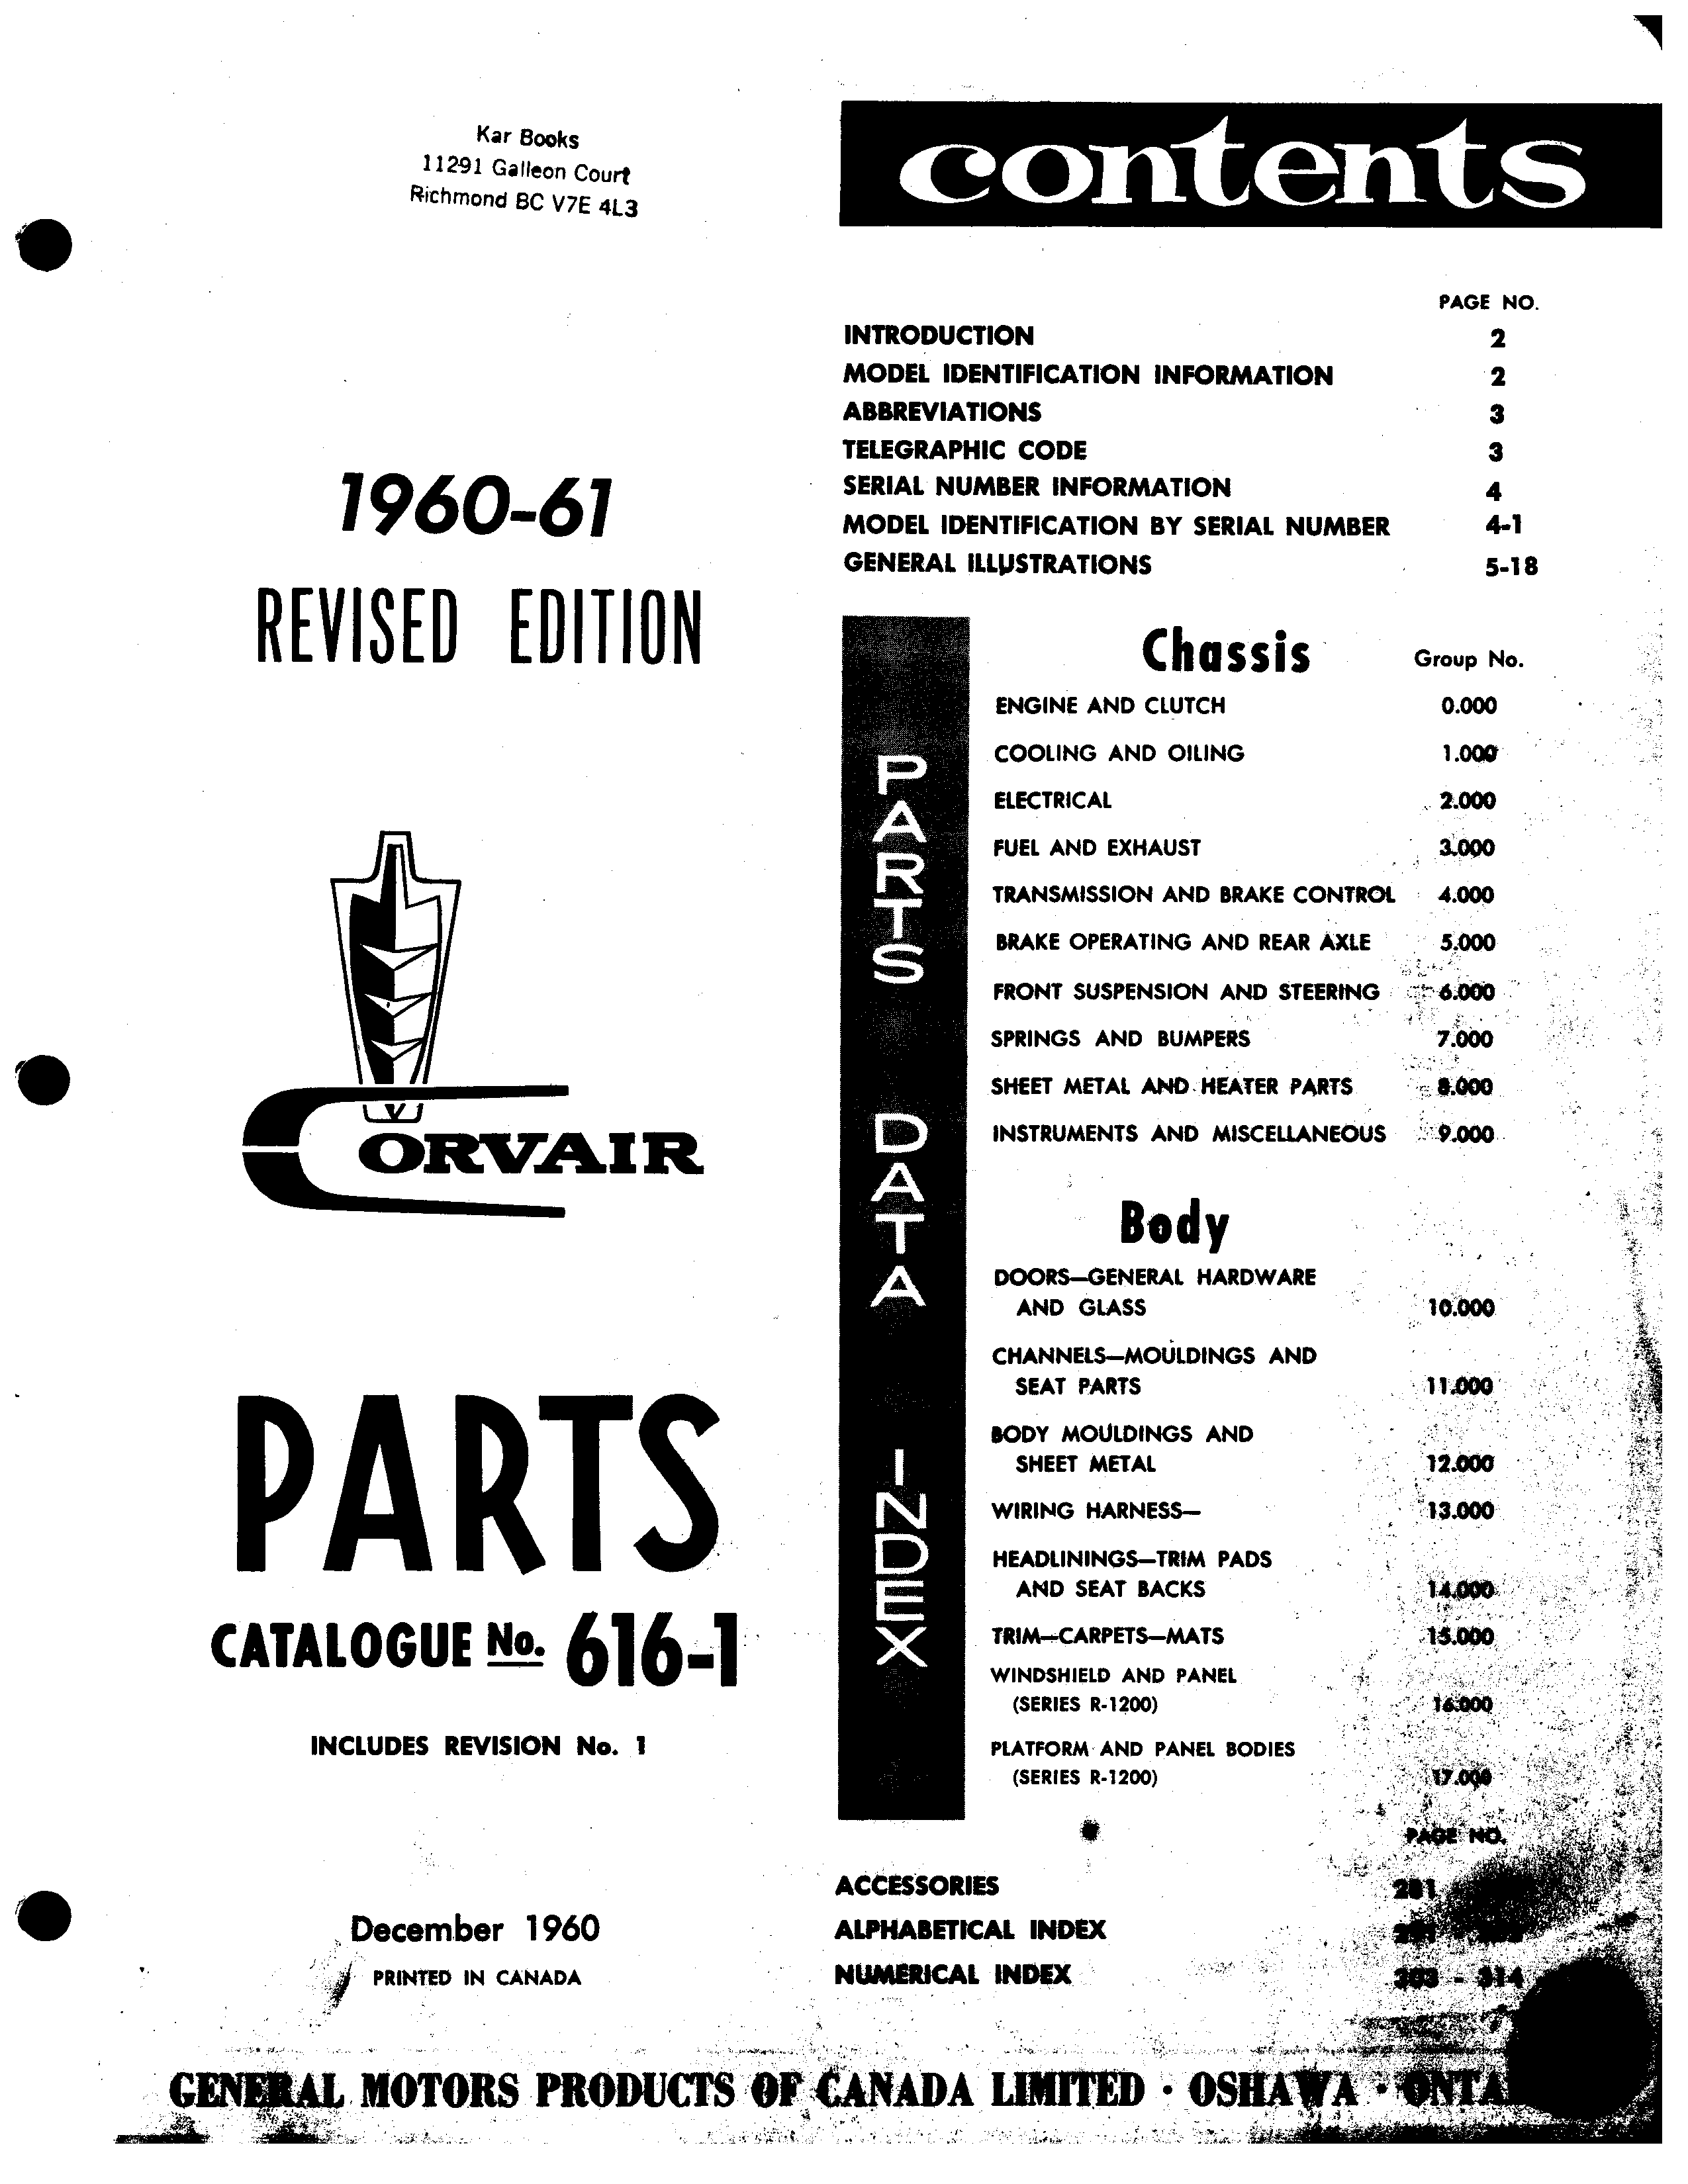 Parts Catalogue No. 616-1 December 1960